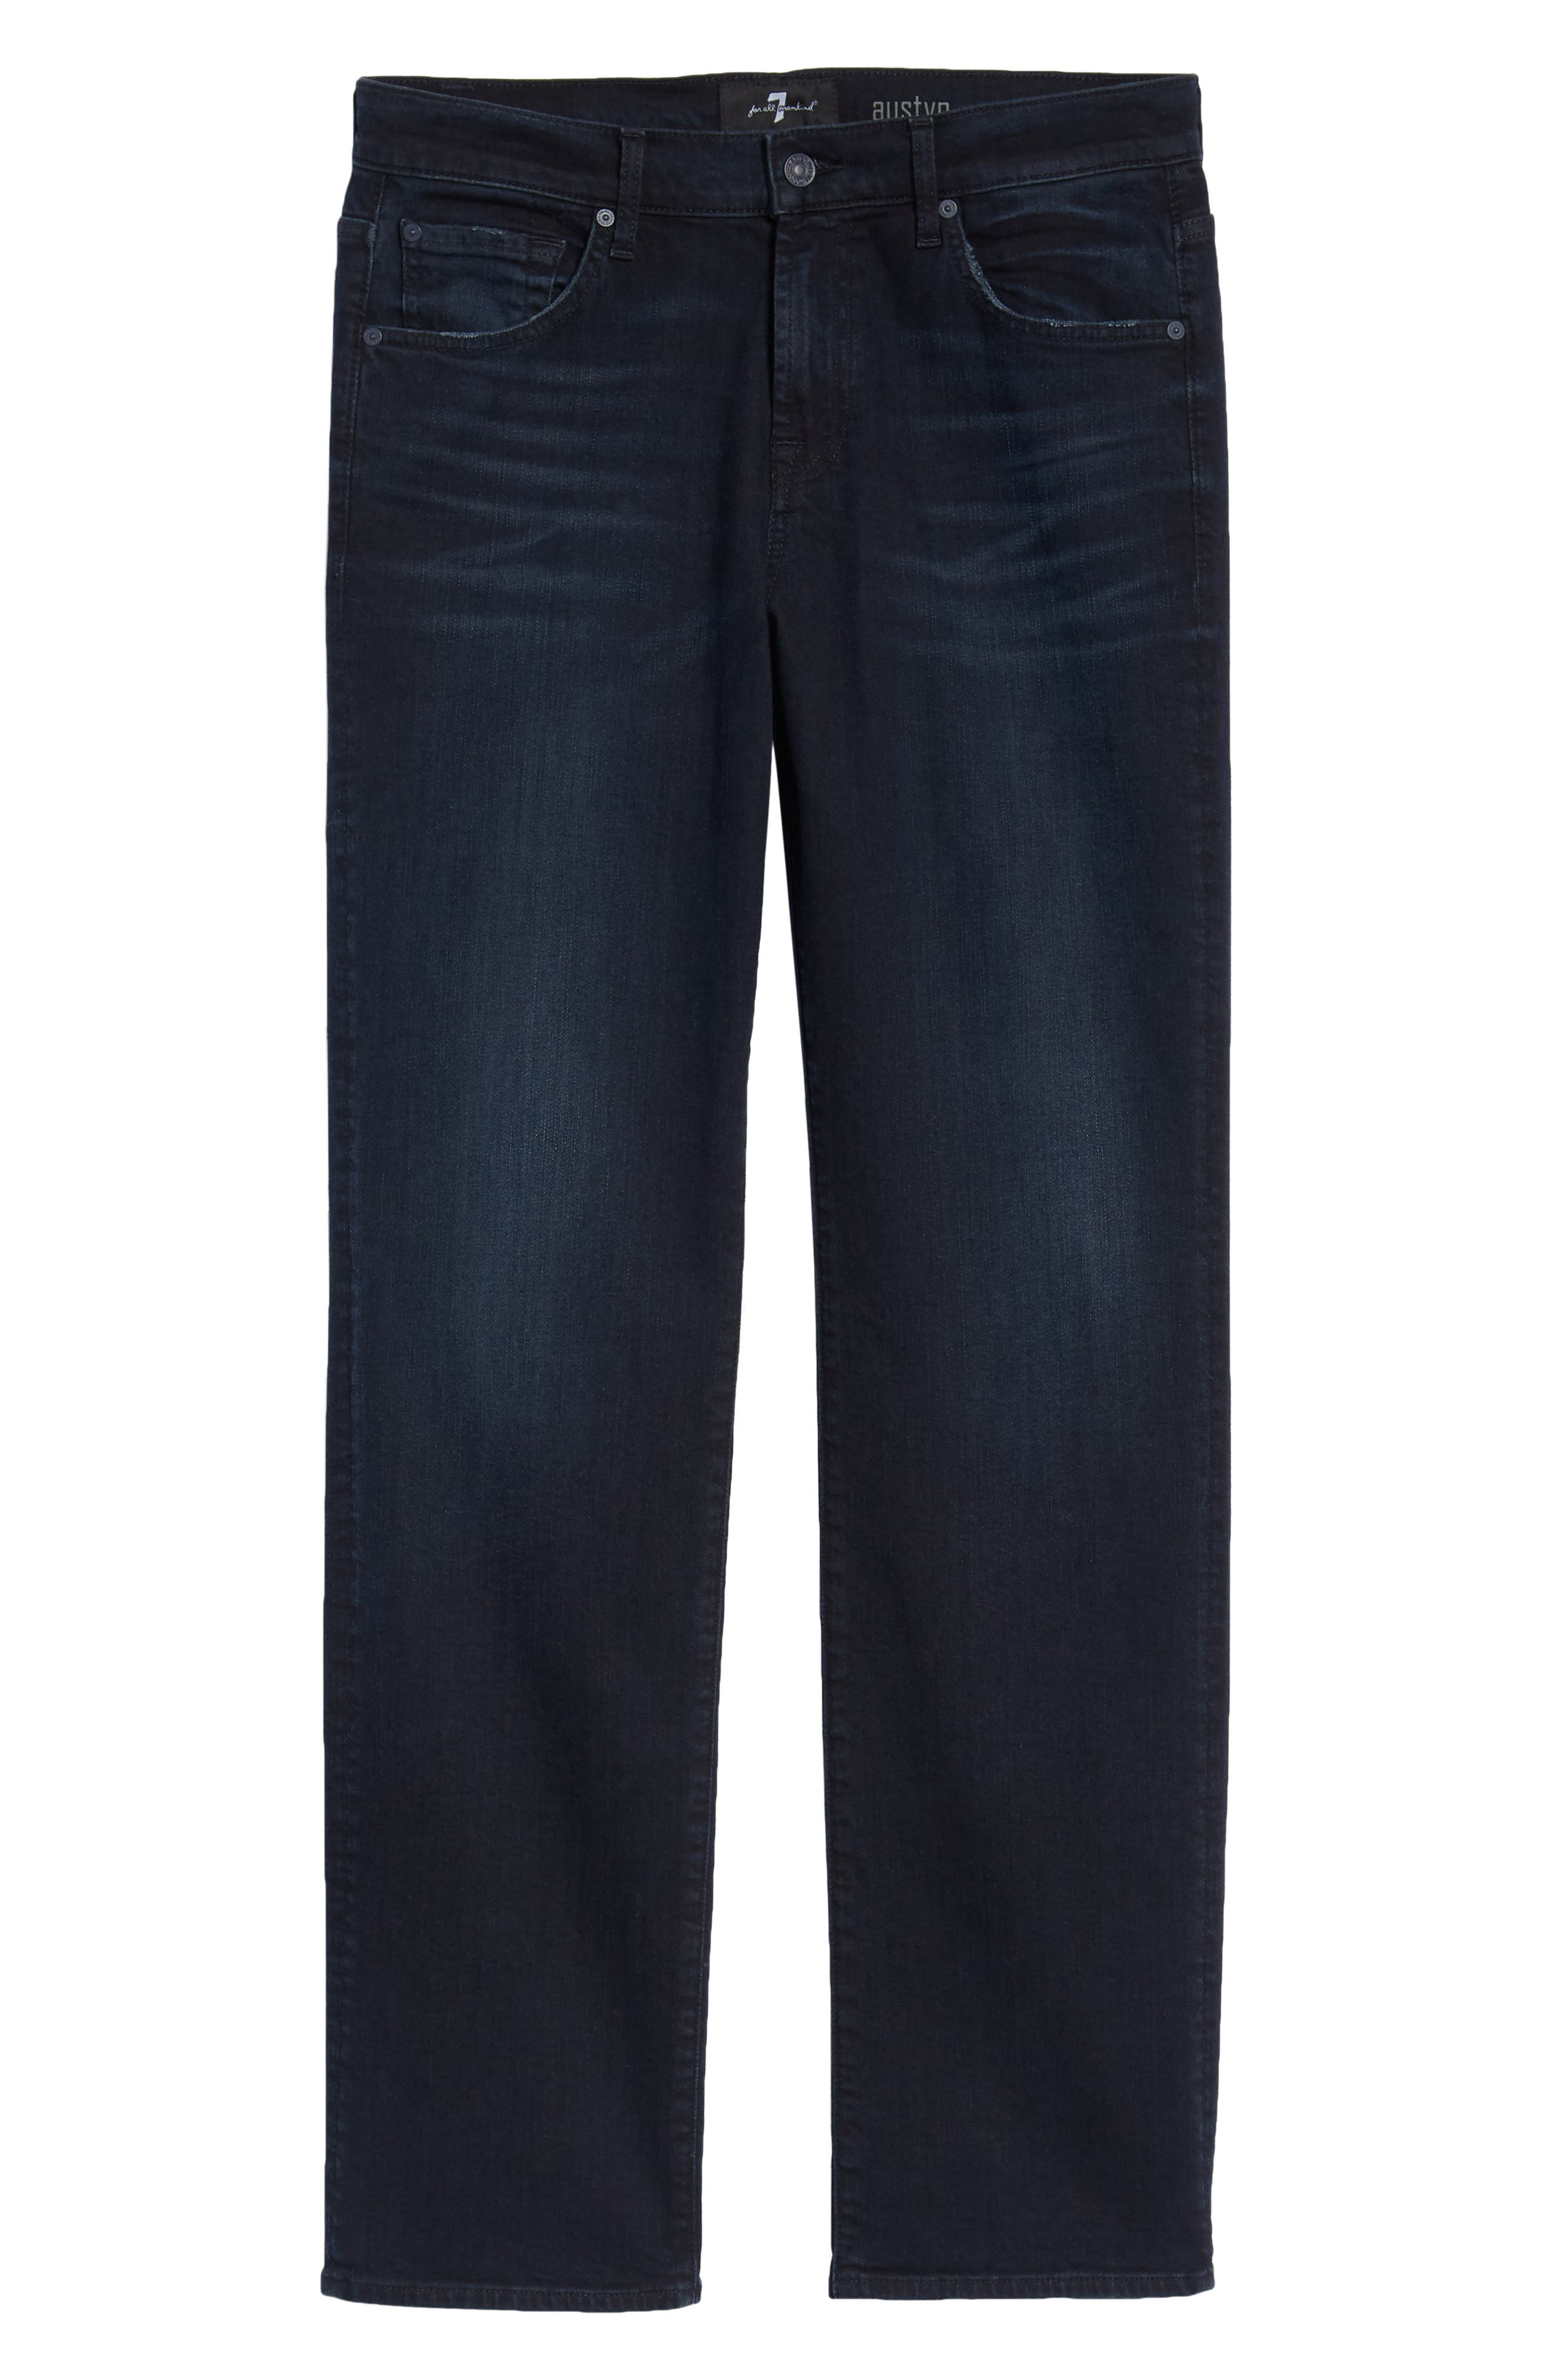 Luxe Austyn Relaxed Fit Jeans,                             Alternate thumbnail 6, color,                             DESPERADO